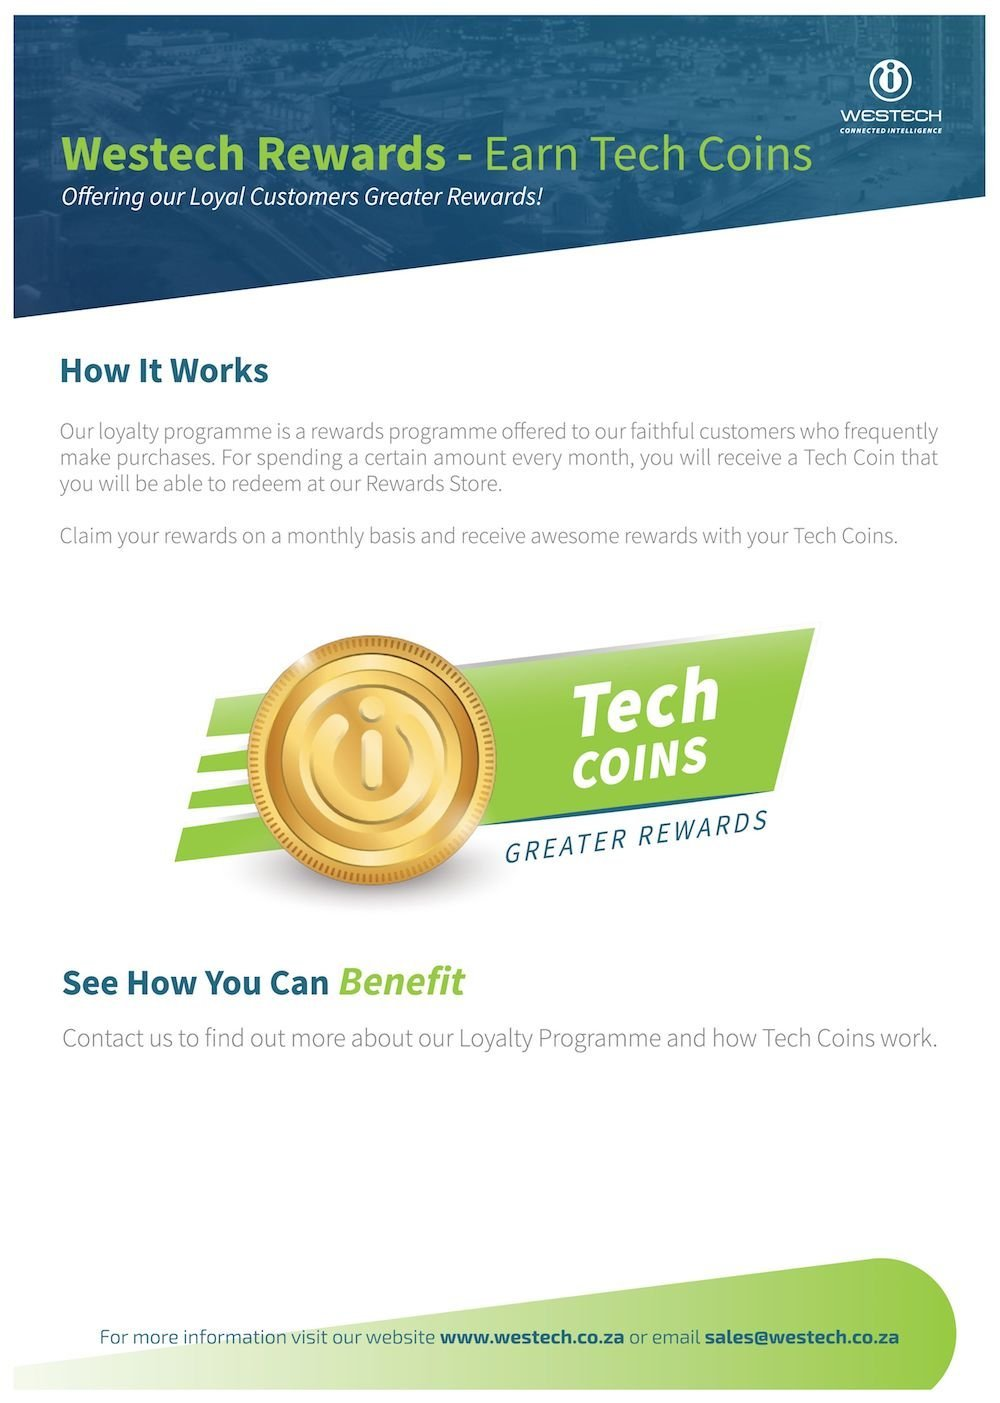 Westech Rewards - Westech IT Company 1